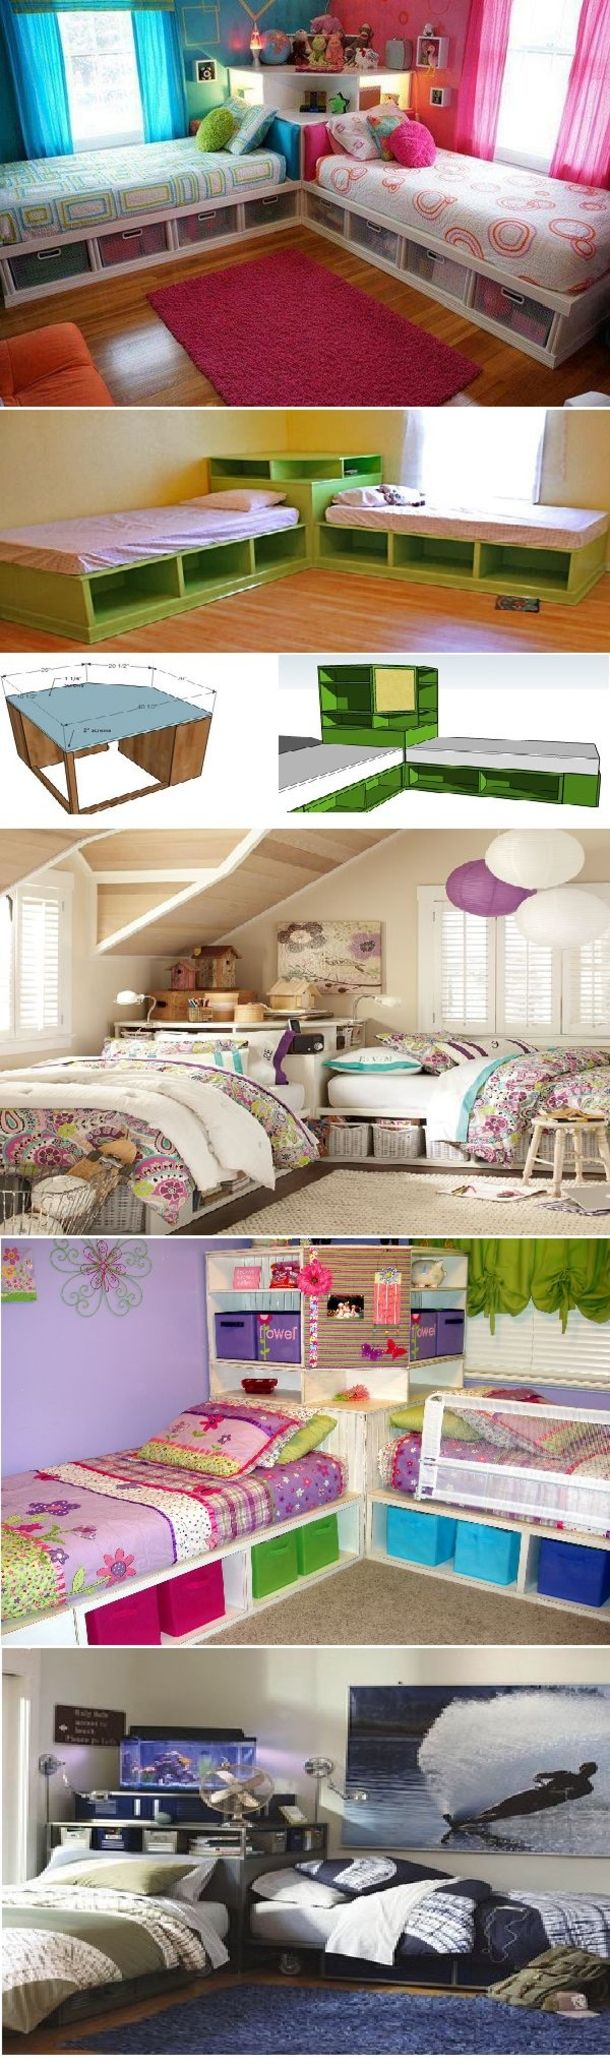 best shared bedroom ideas for boys and girls for the home